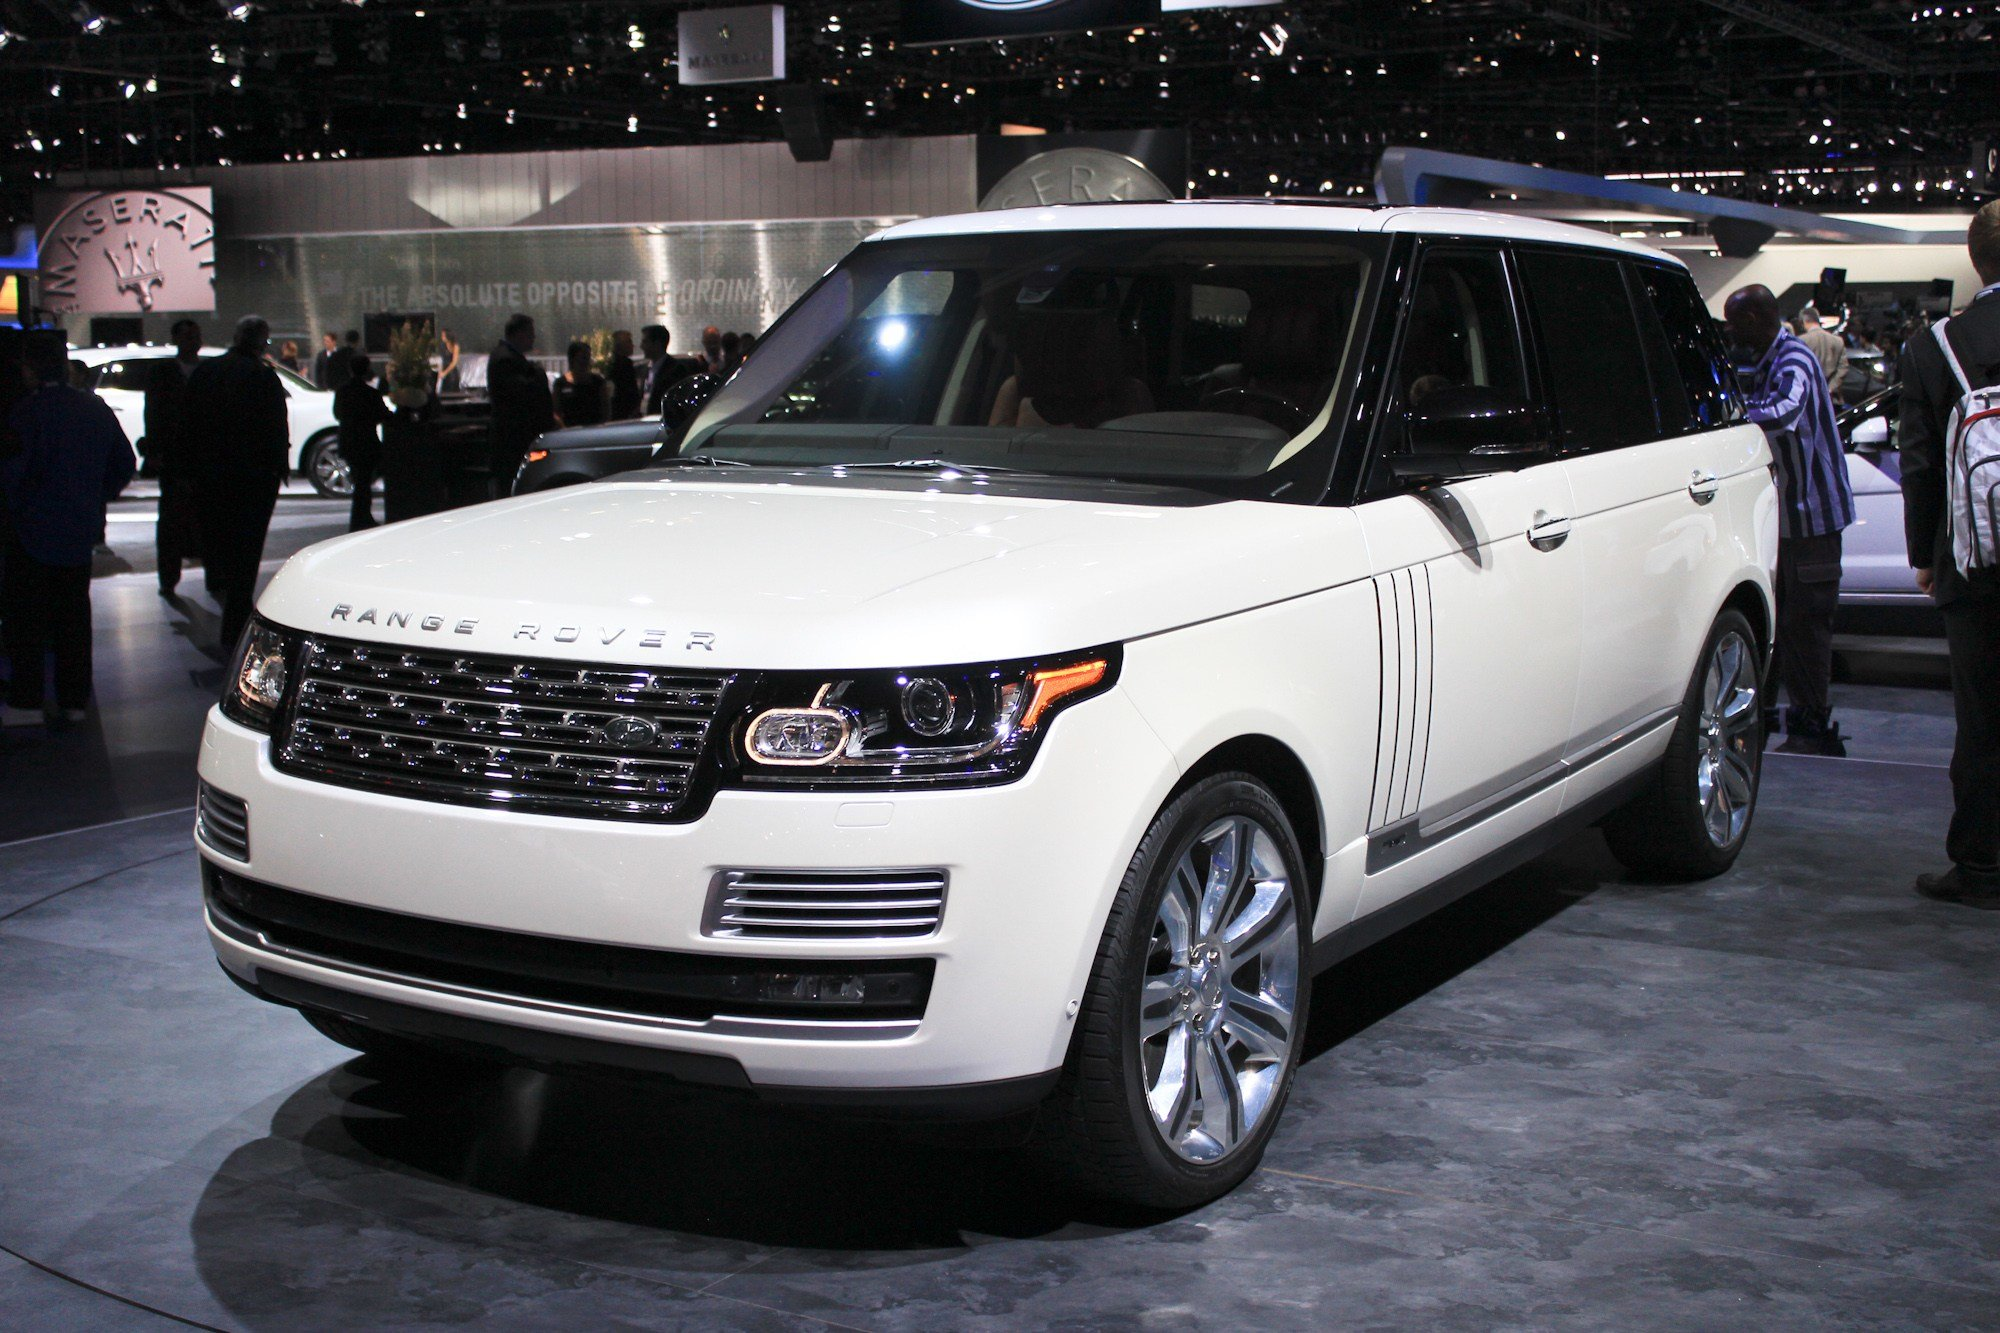 New 2014 Land Rover Range Rover Review Ratings Specs Prices On This Month